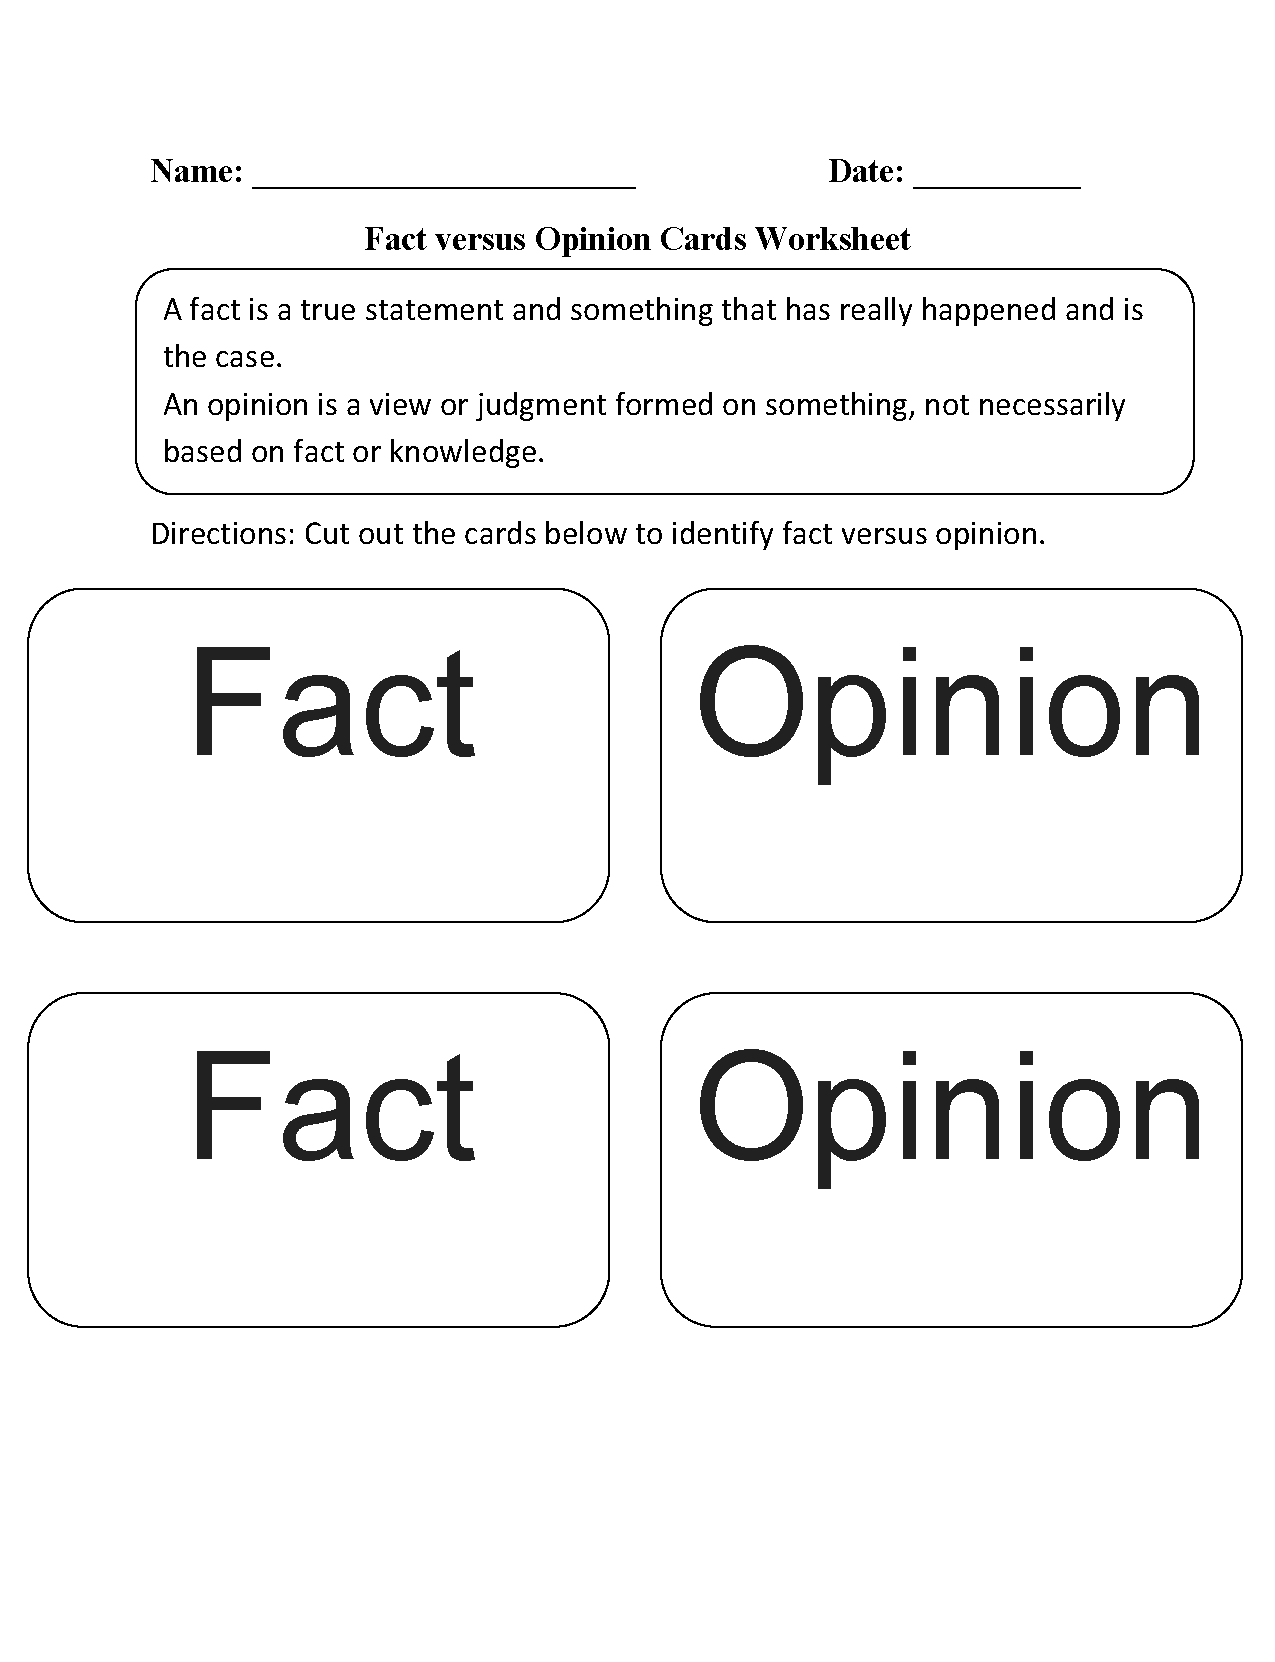 Worksheets Fact Vs Opinion Worksheets reading worksheets fact and opinion worksheets